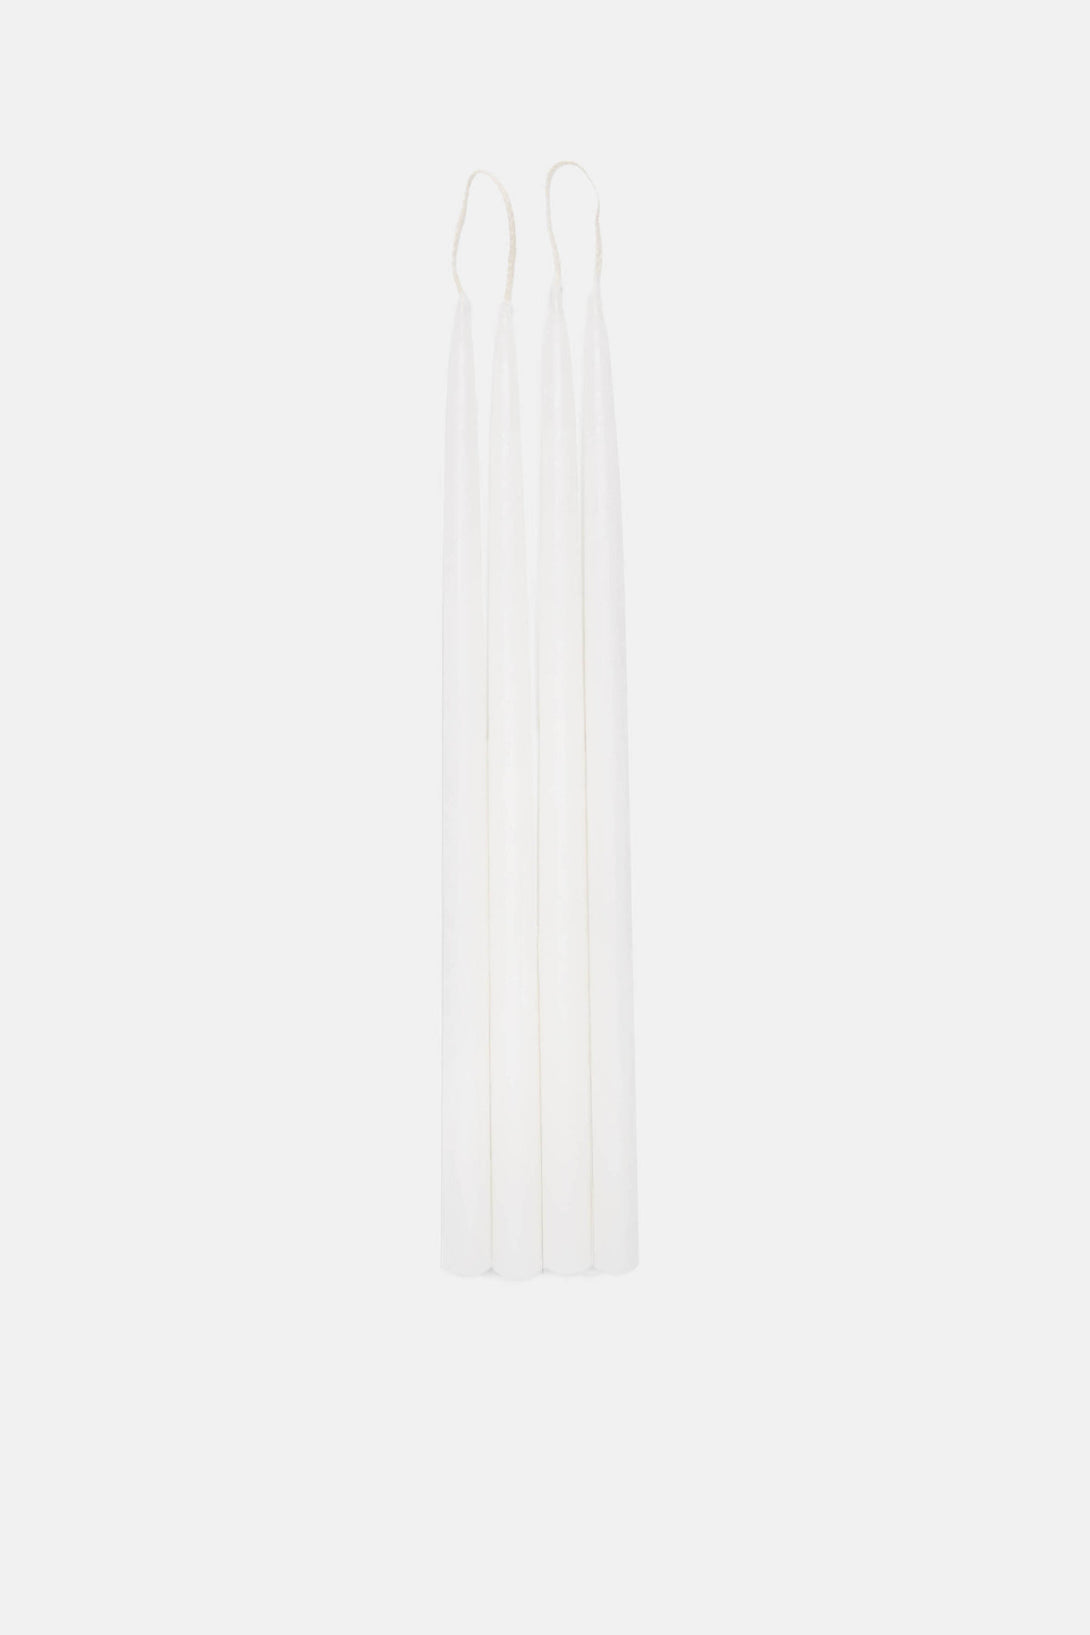 White Candles for Gemini Candelholder